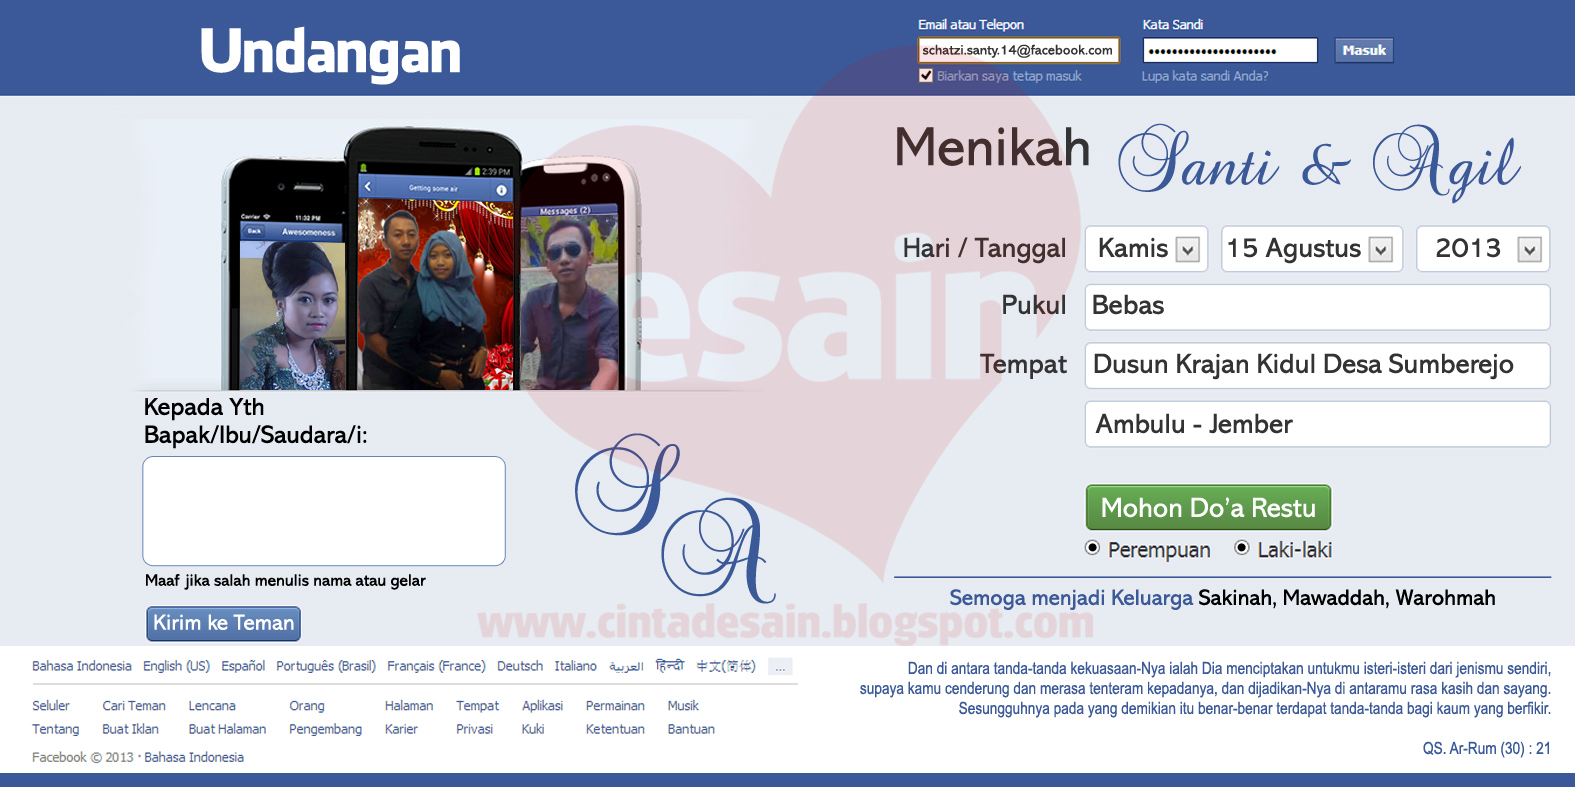 Undangan Model Facebook Format Adobe Photoshop Gratis